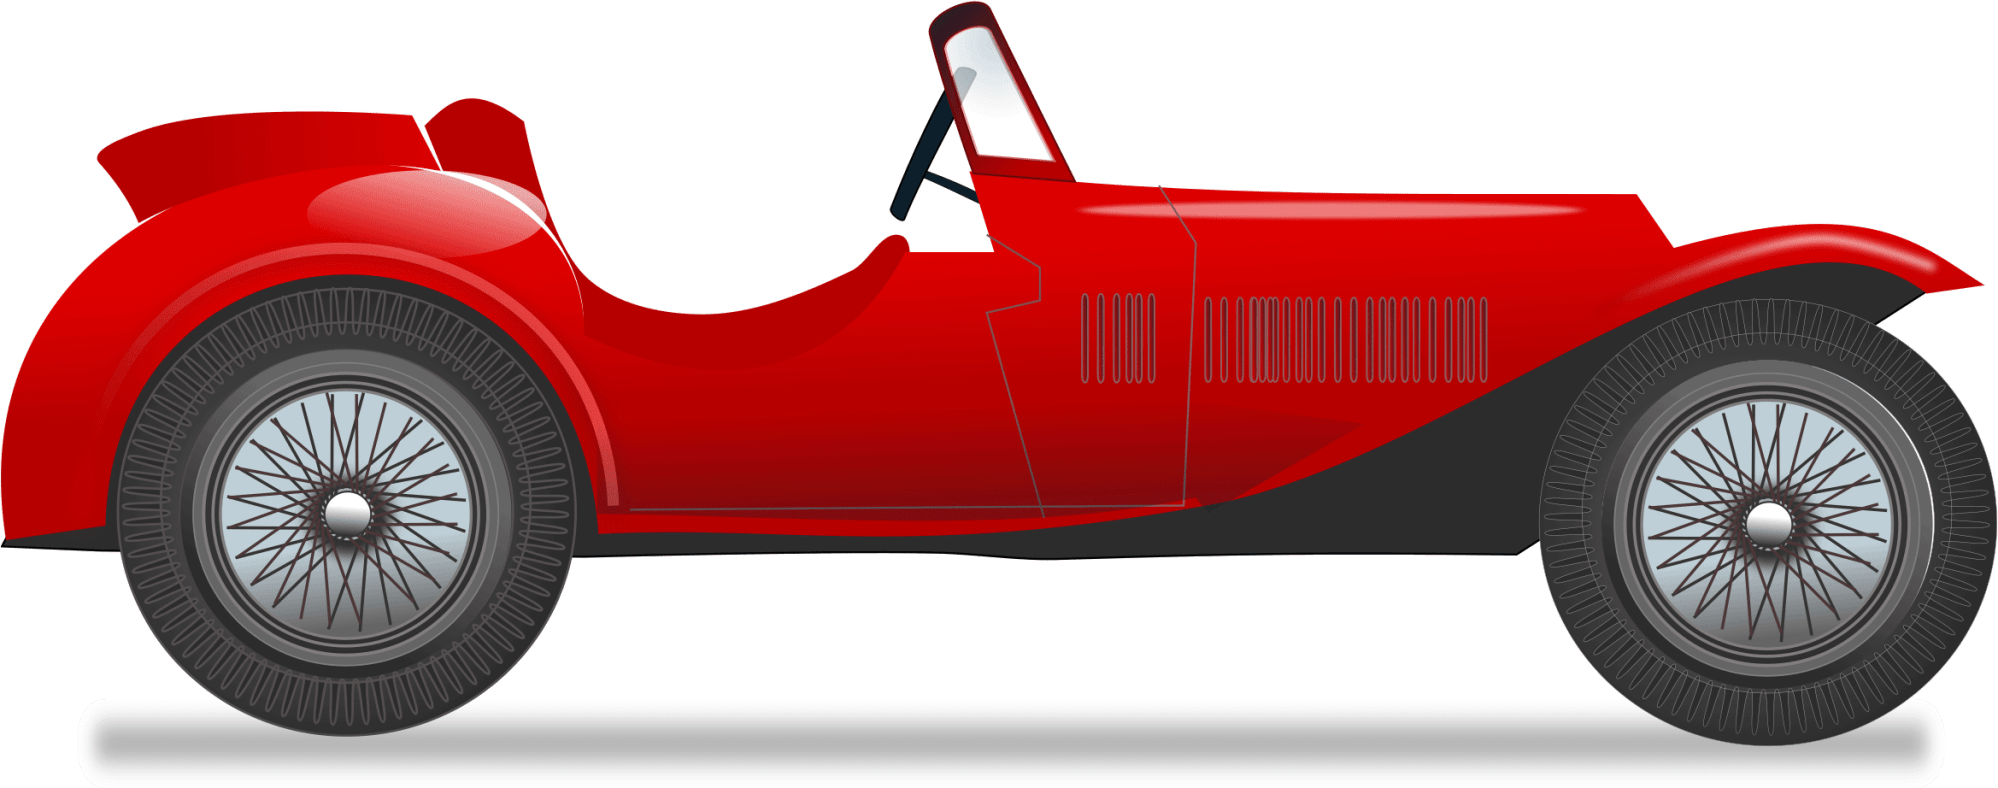 hight resolution of vintage race car png clipart images in png car clipart 2400x960 png